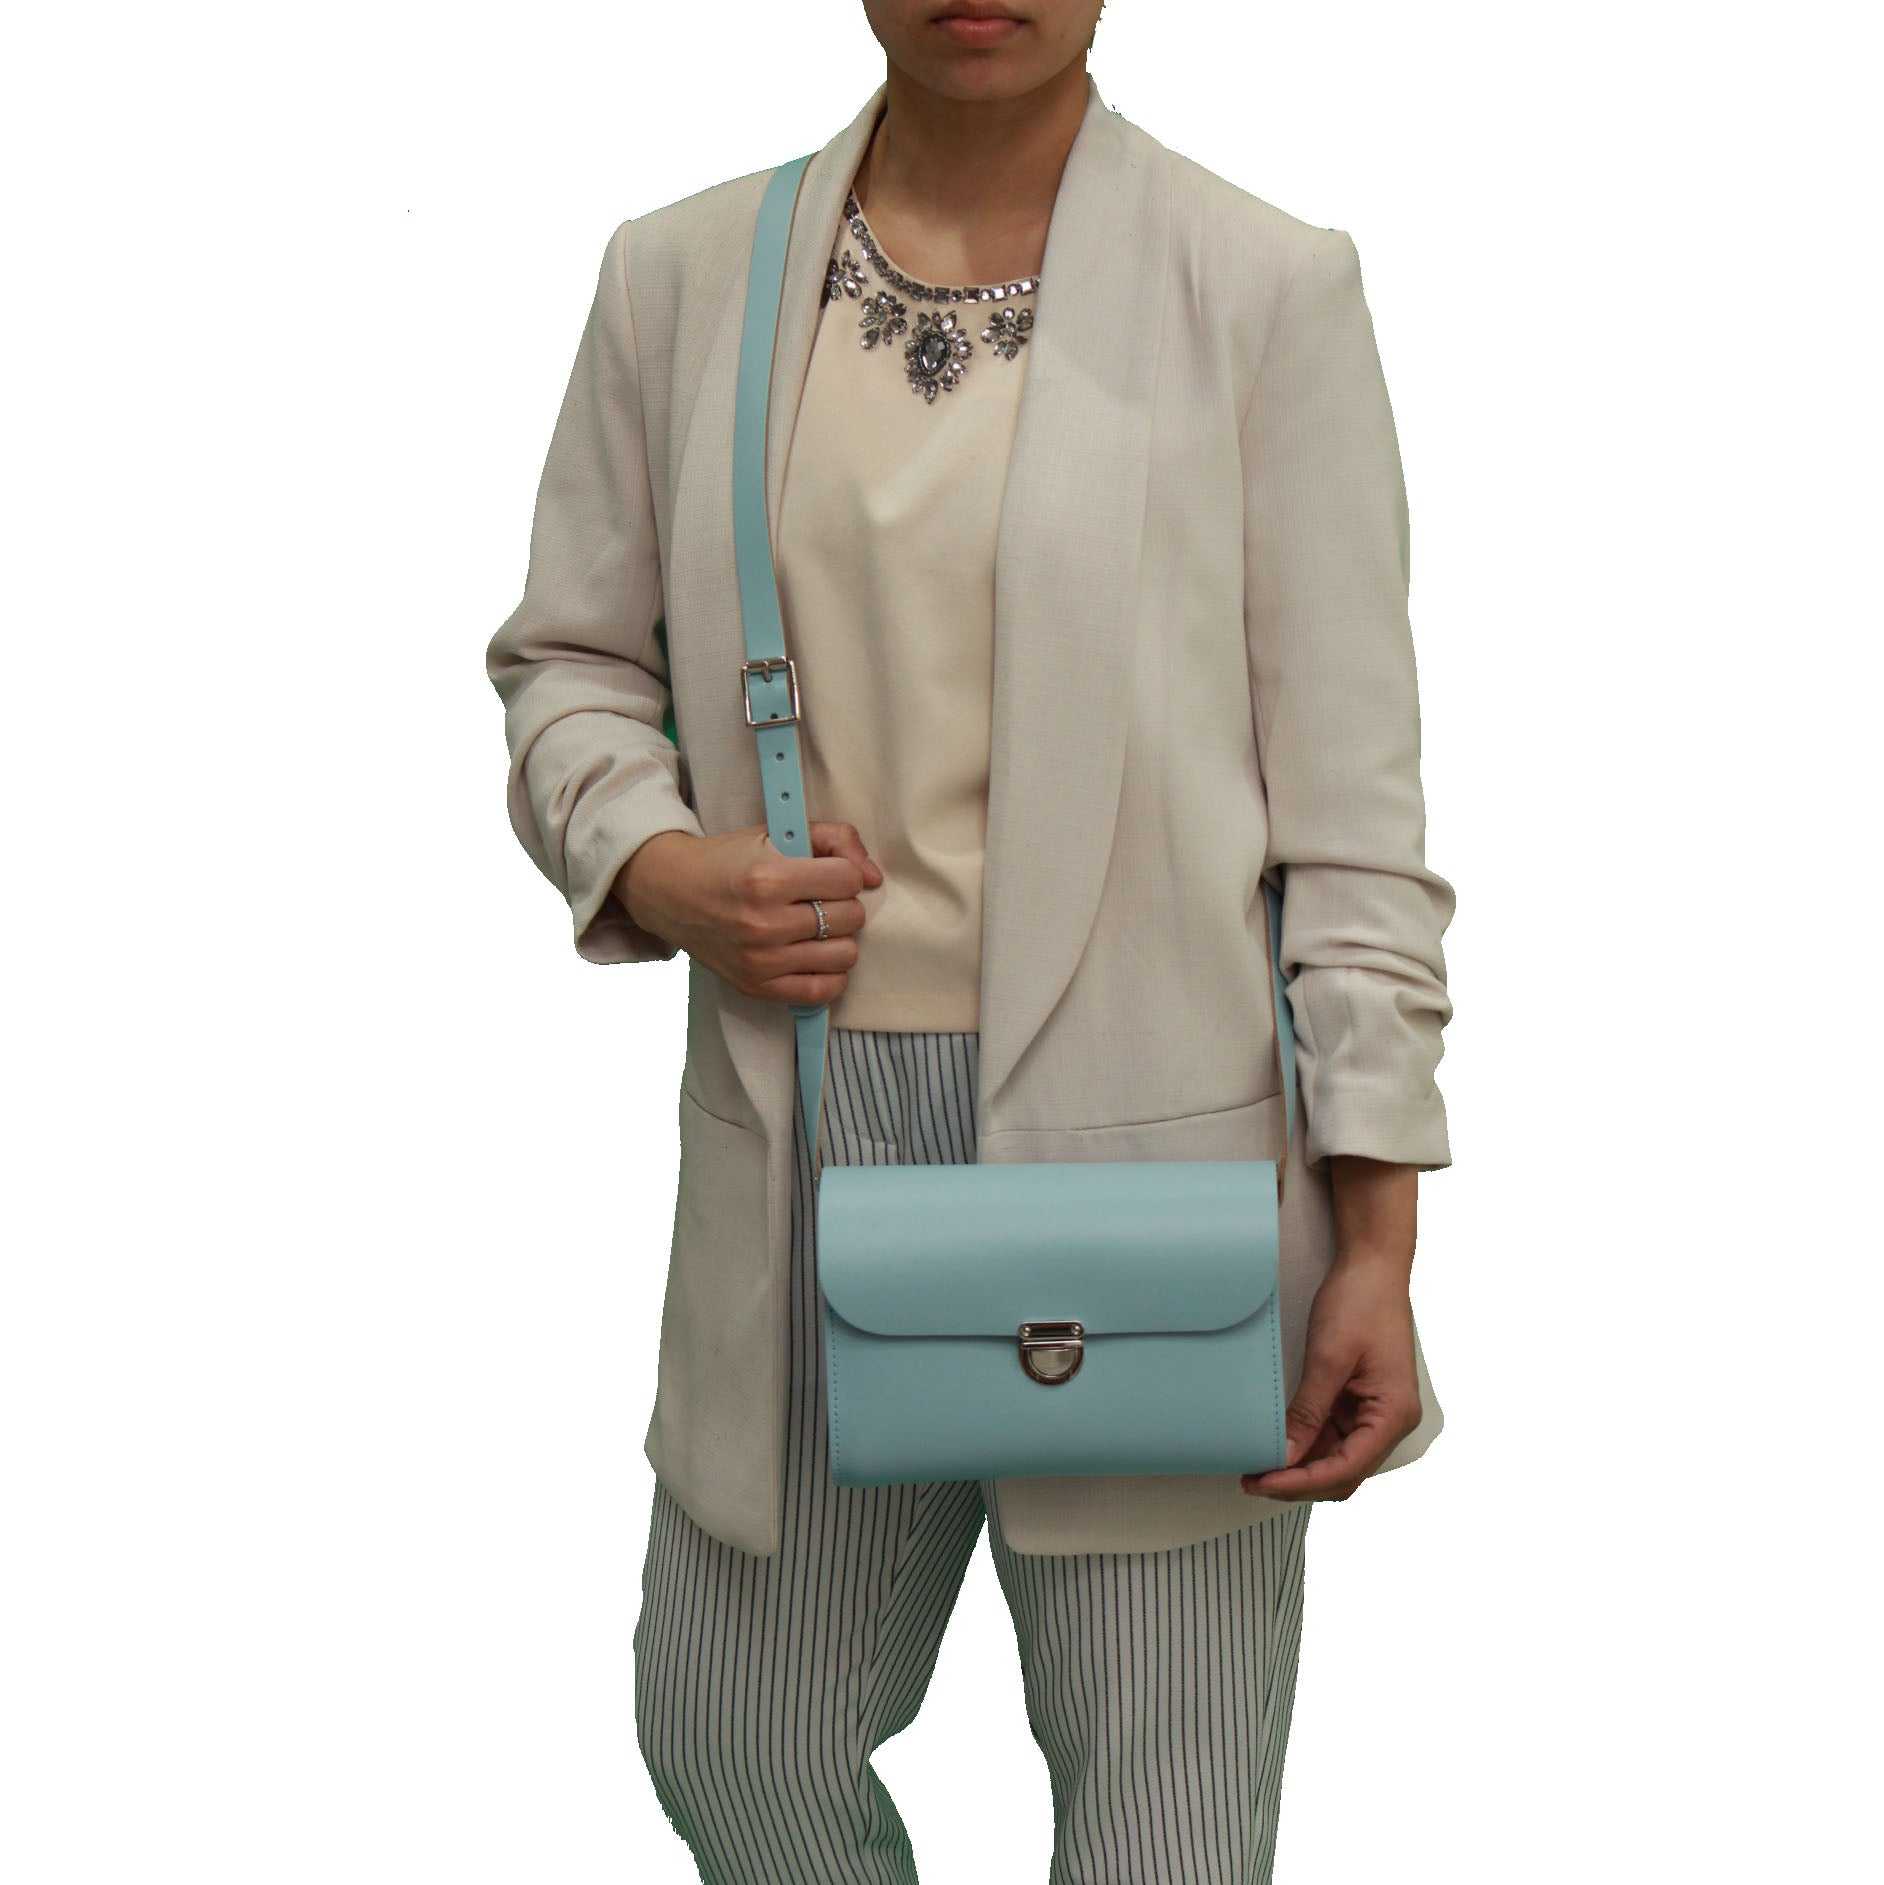 Baby Blue Handmade Womens Small Leather Satchel Cross Body Classic Handbag. Can be personalised with initials.